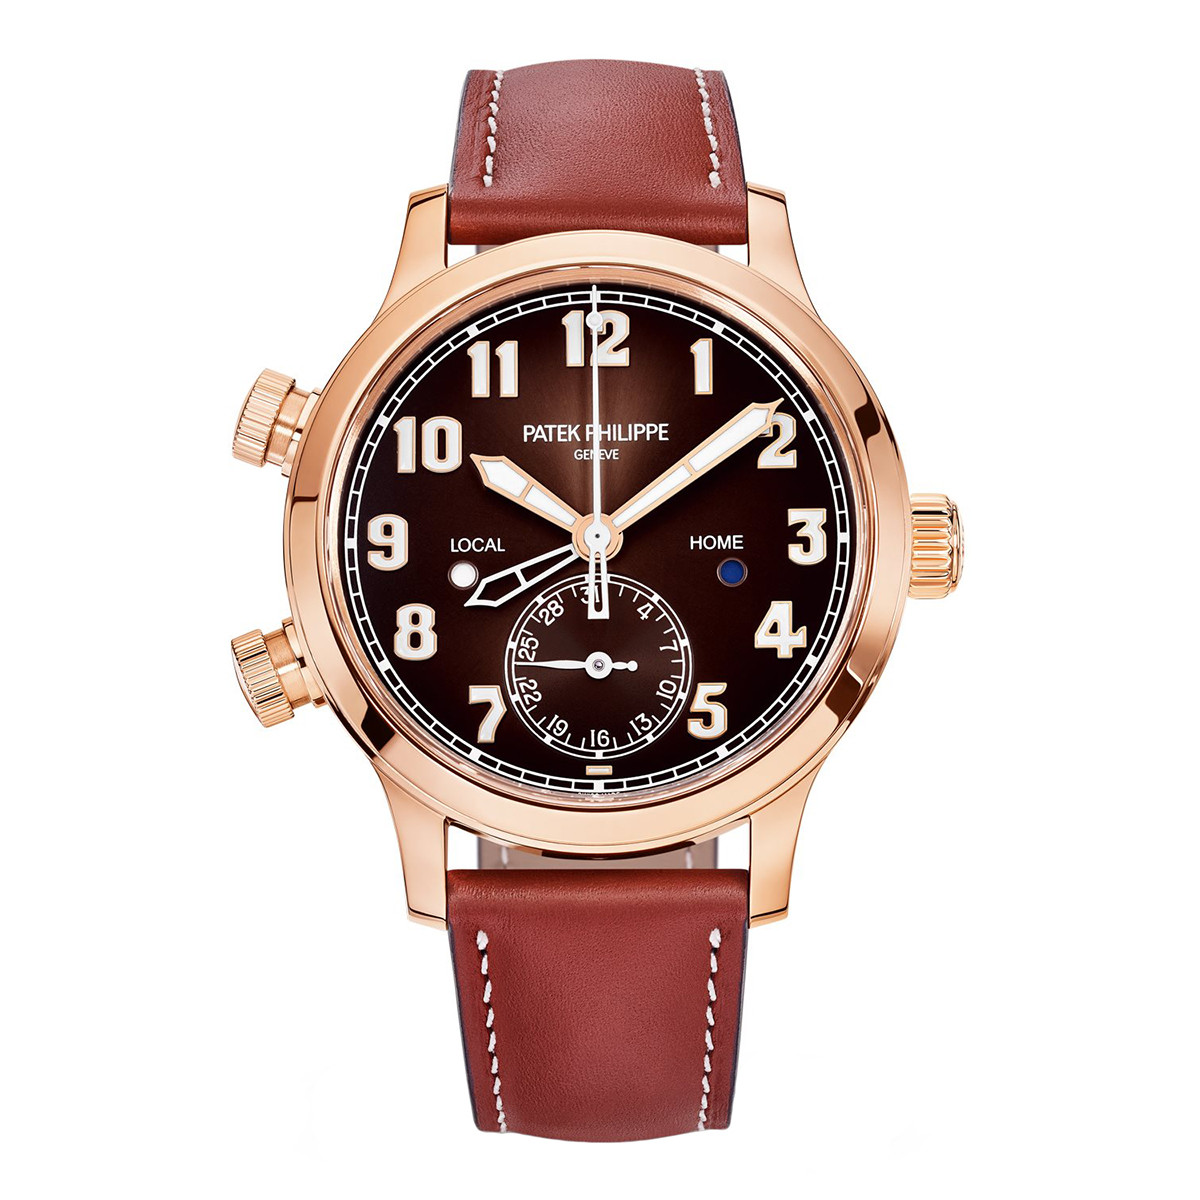 Calatrava Pilot Travel Time Rose Gold (7234R-001)